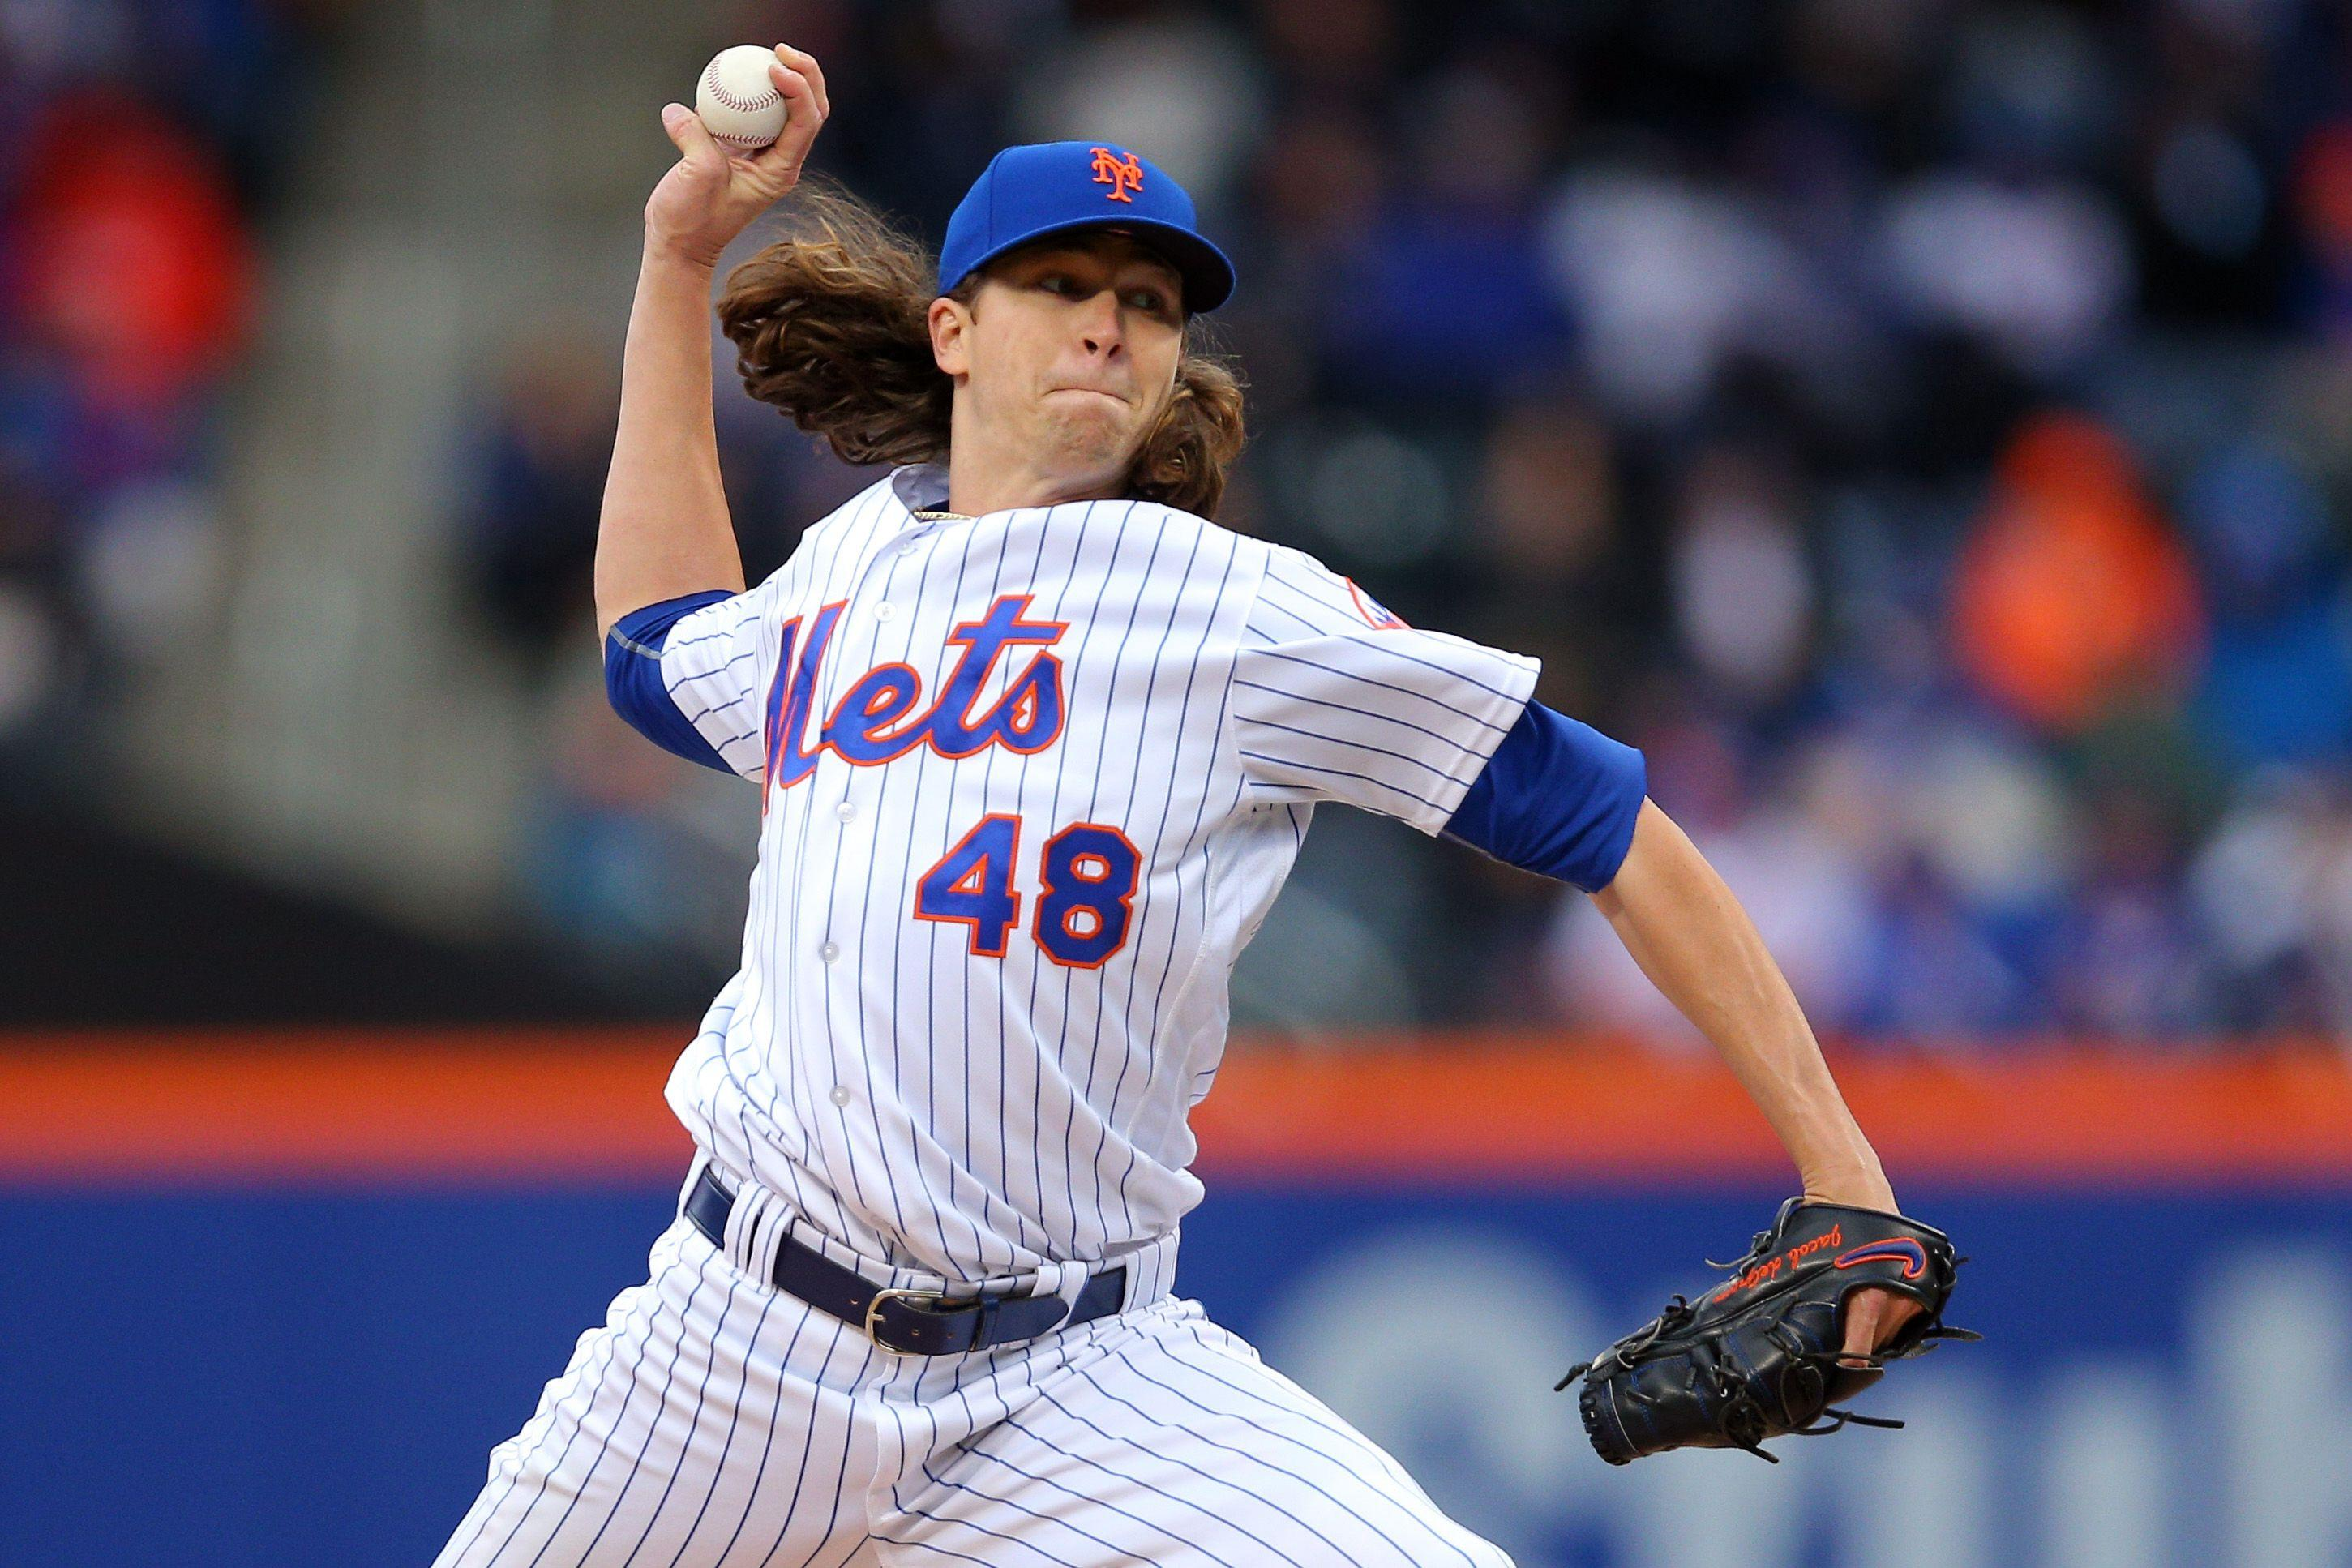 Jacob Degrom Wallpapers Wallpapers Widescreen Image Photos Pictures